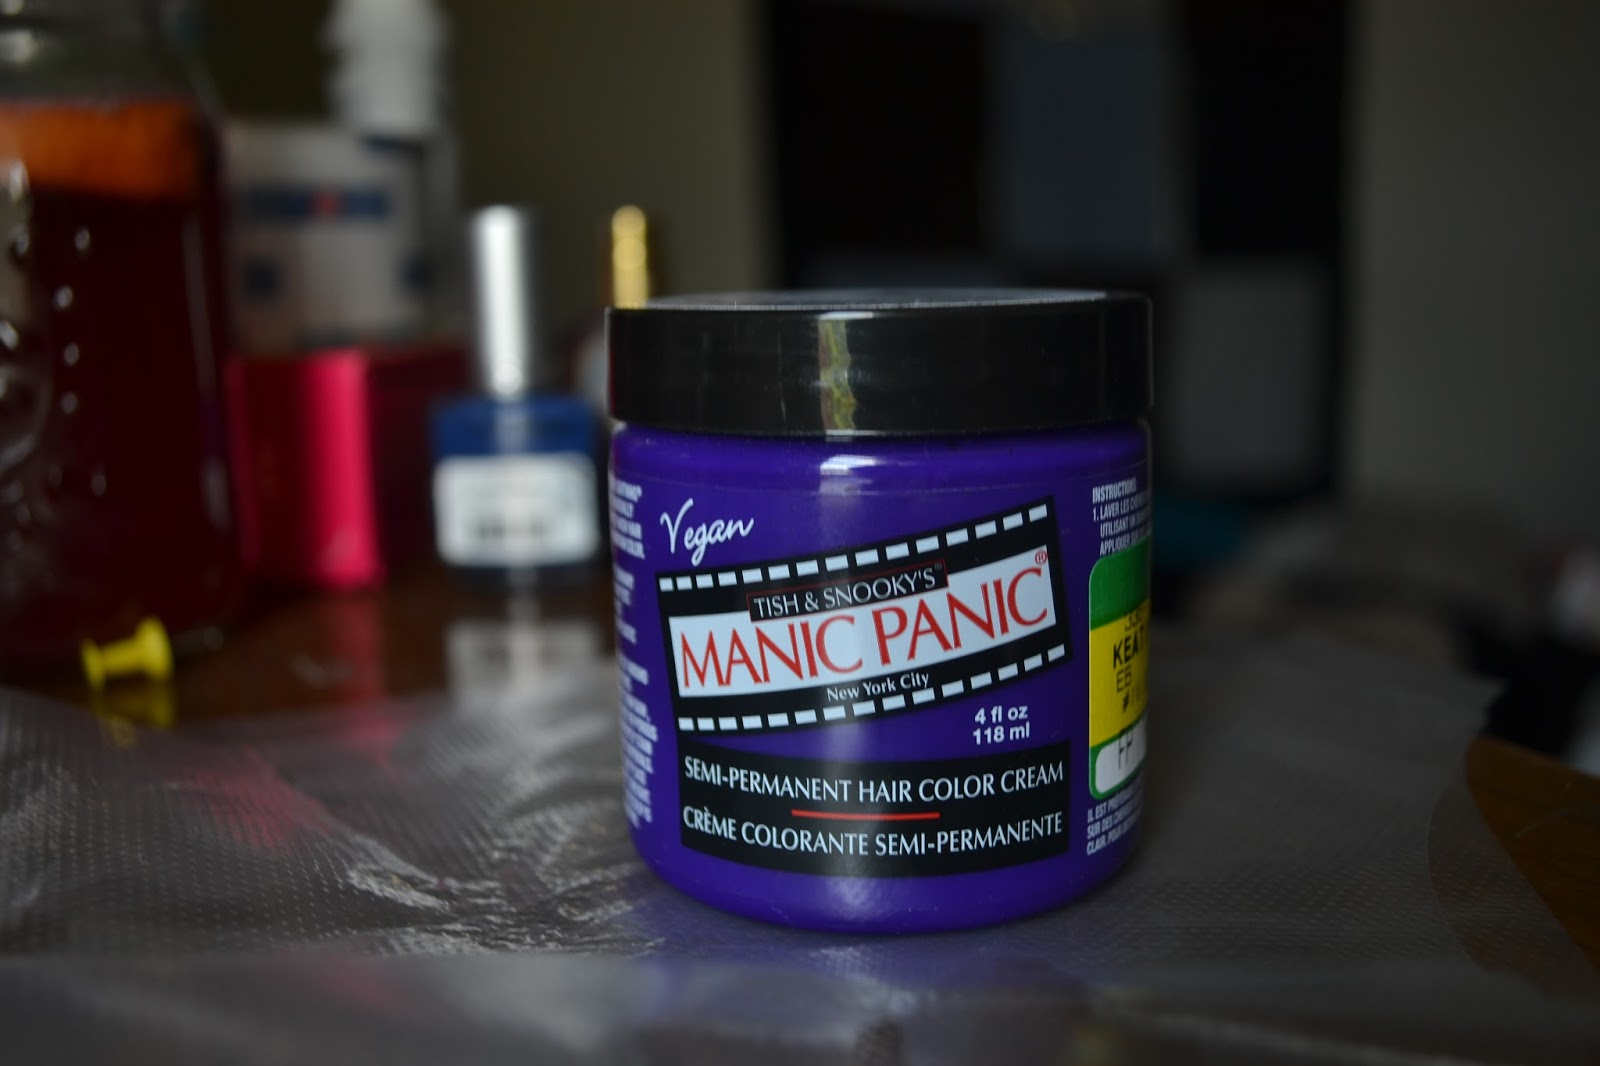 Put Your Make Up On Manic Panic Semi Permanent Reviewapplication